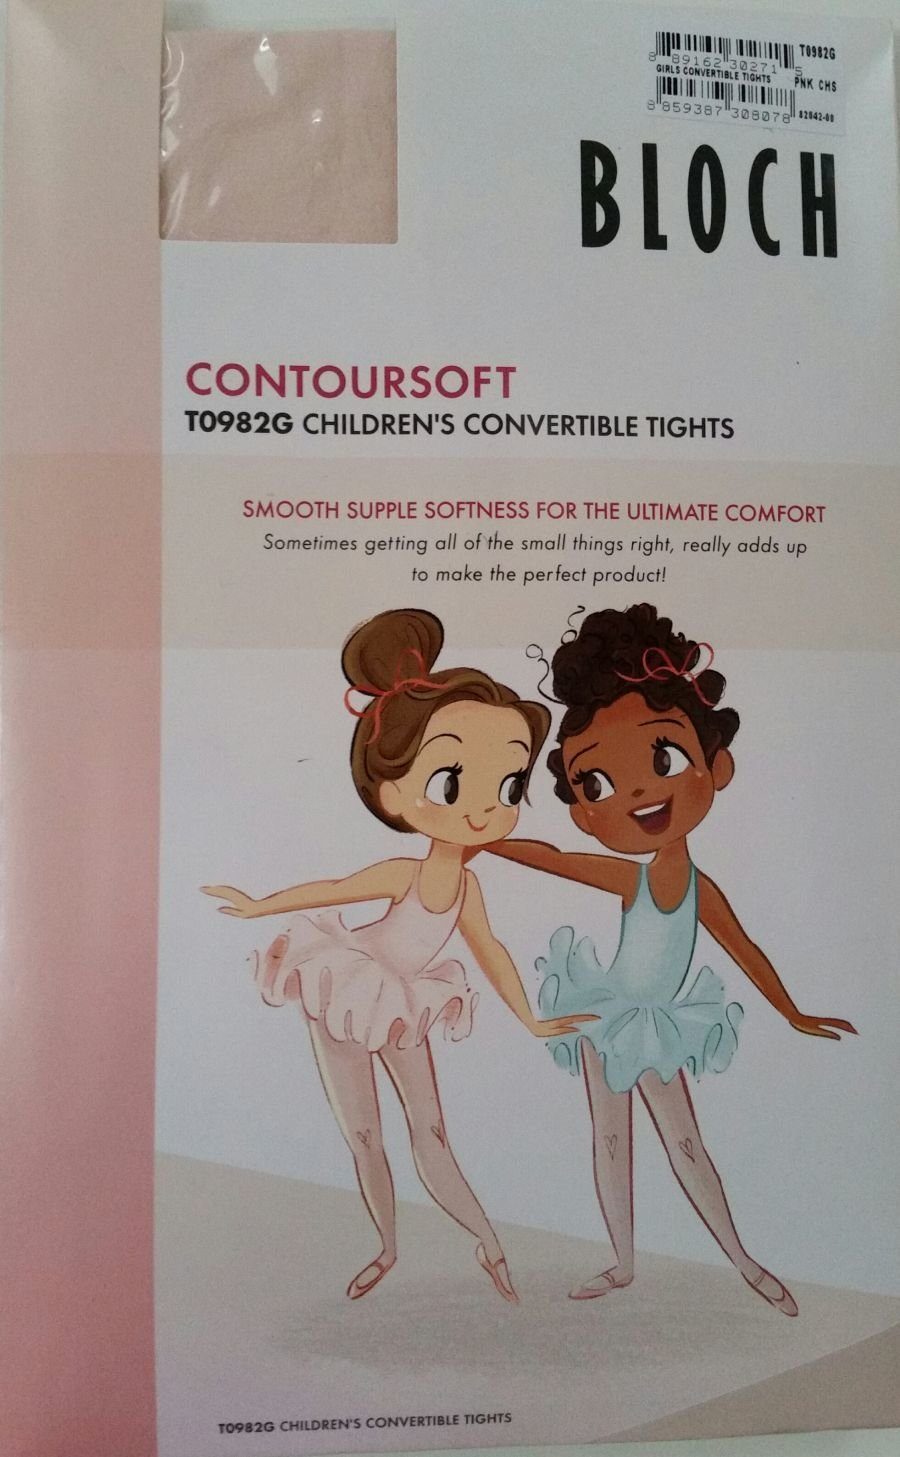 c9727f8f37ee8 BLOCH CONTOURSOFT CONVERTIBLE TIGHTS CHILD & ADULT